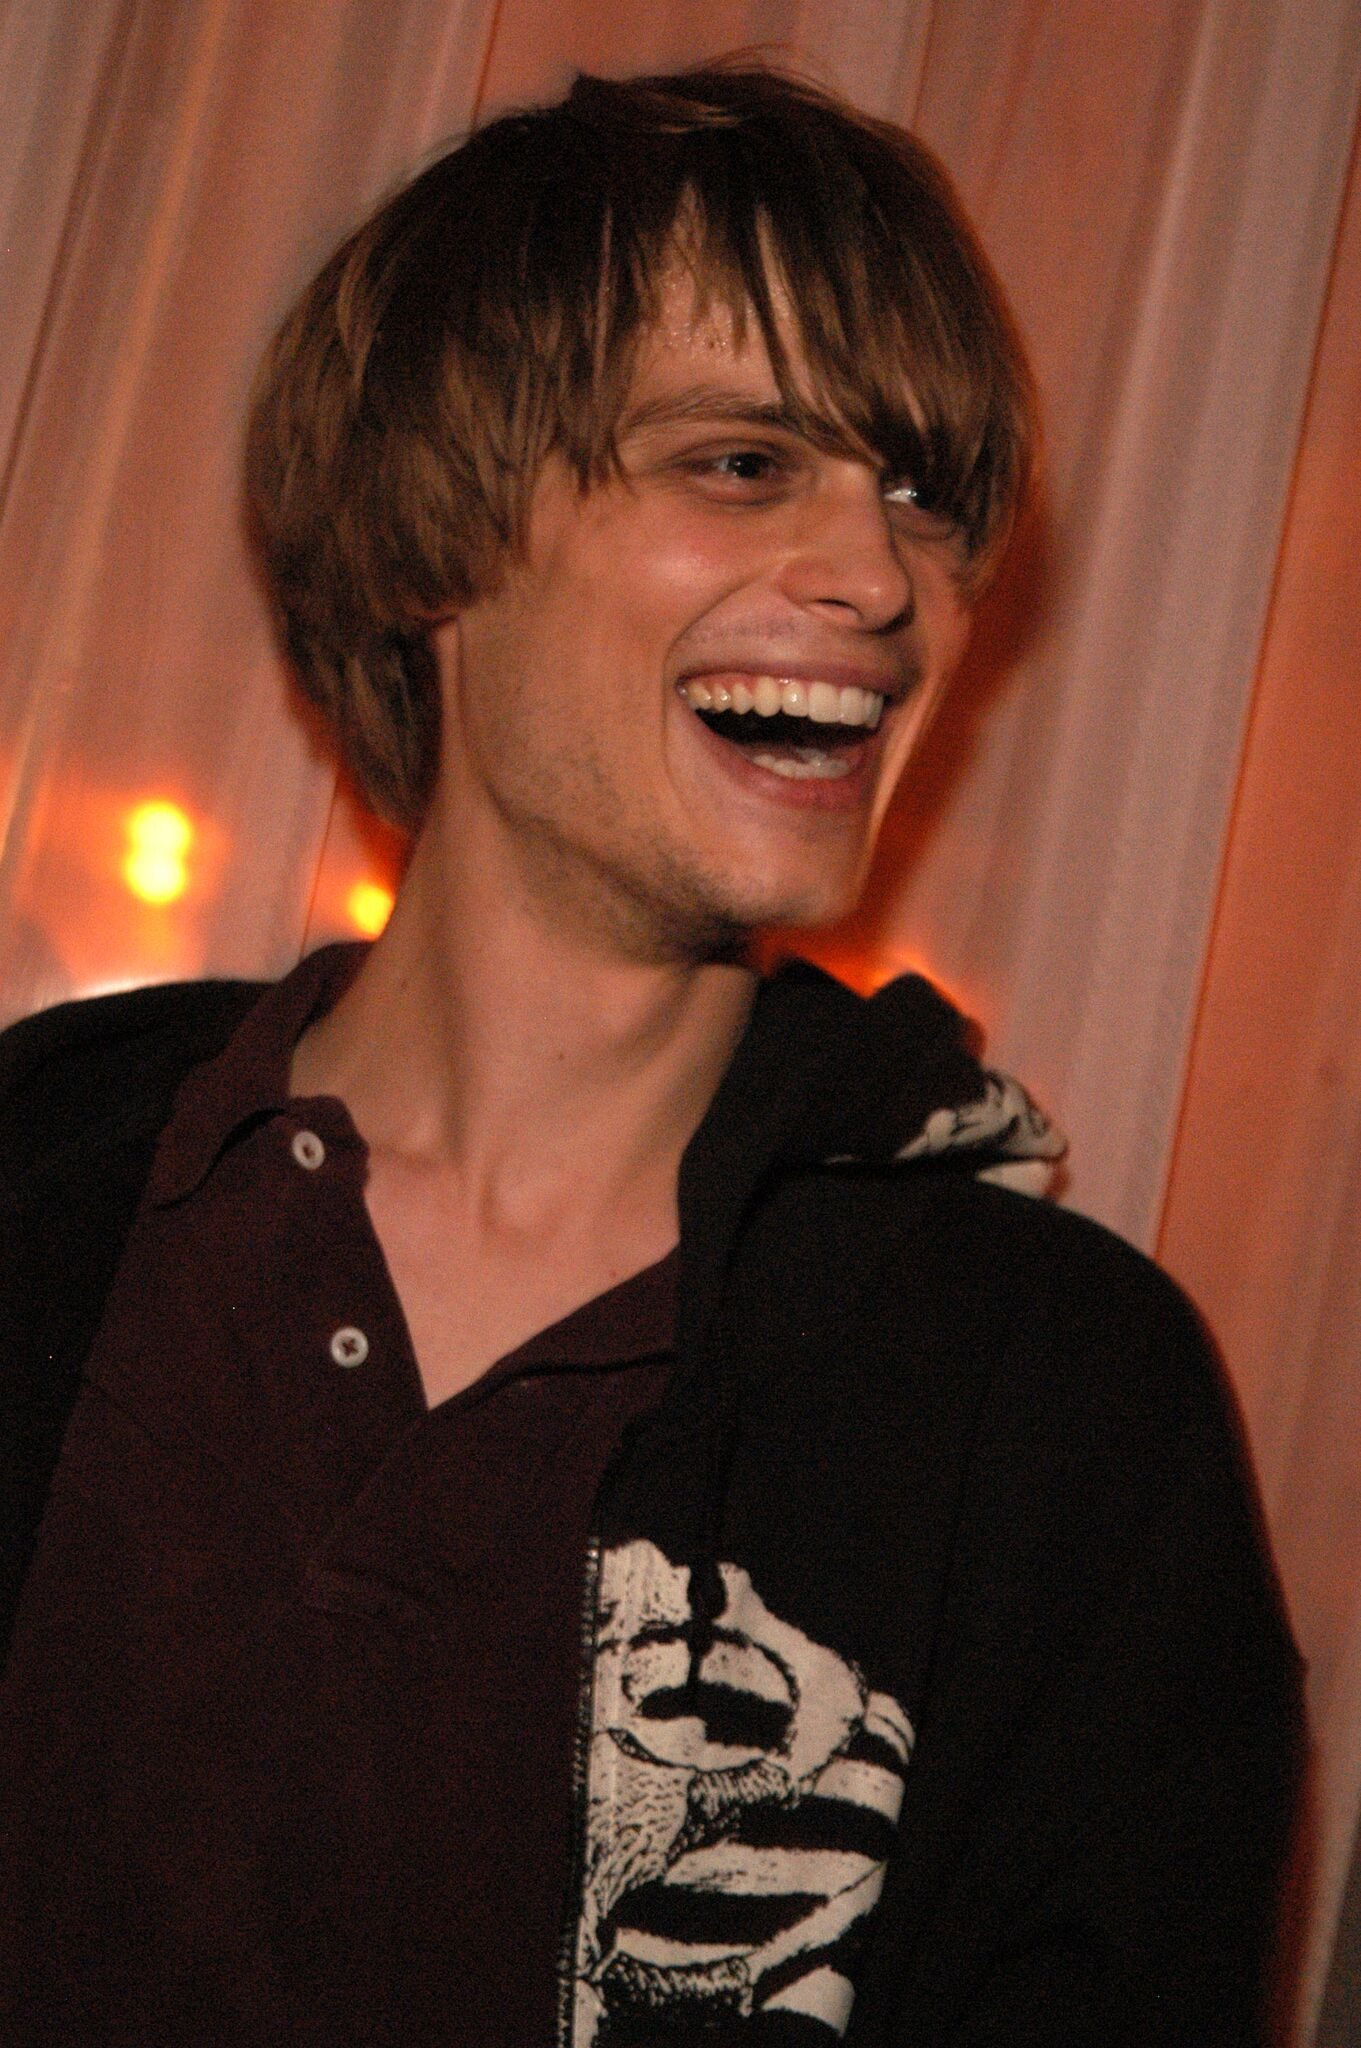 Model Mathew Gubler attends the Christopher Deane after party | Getty Images